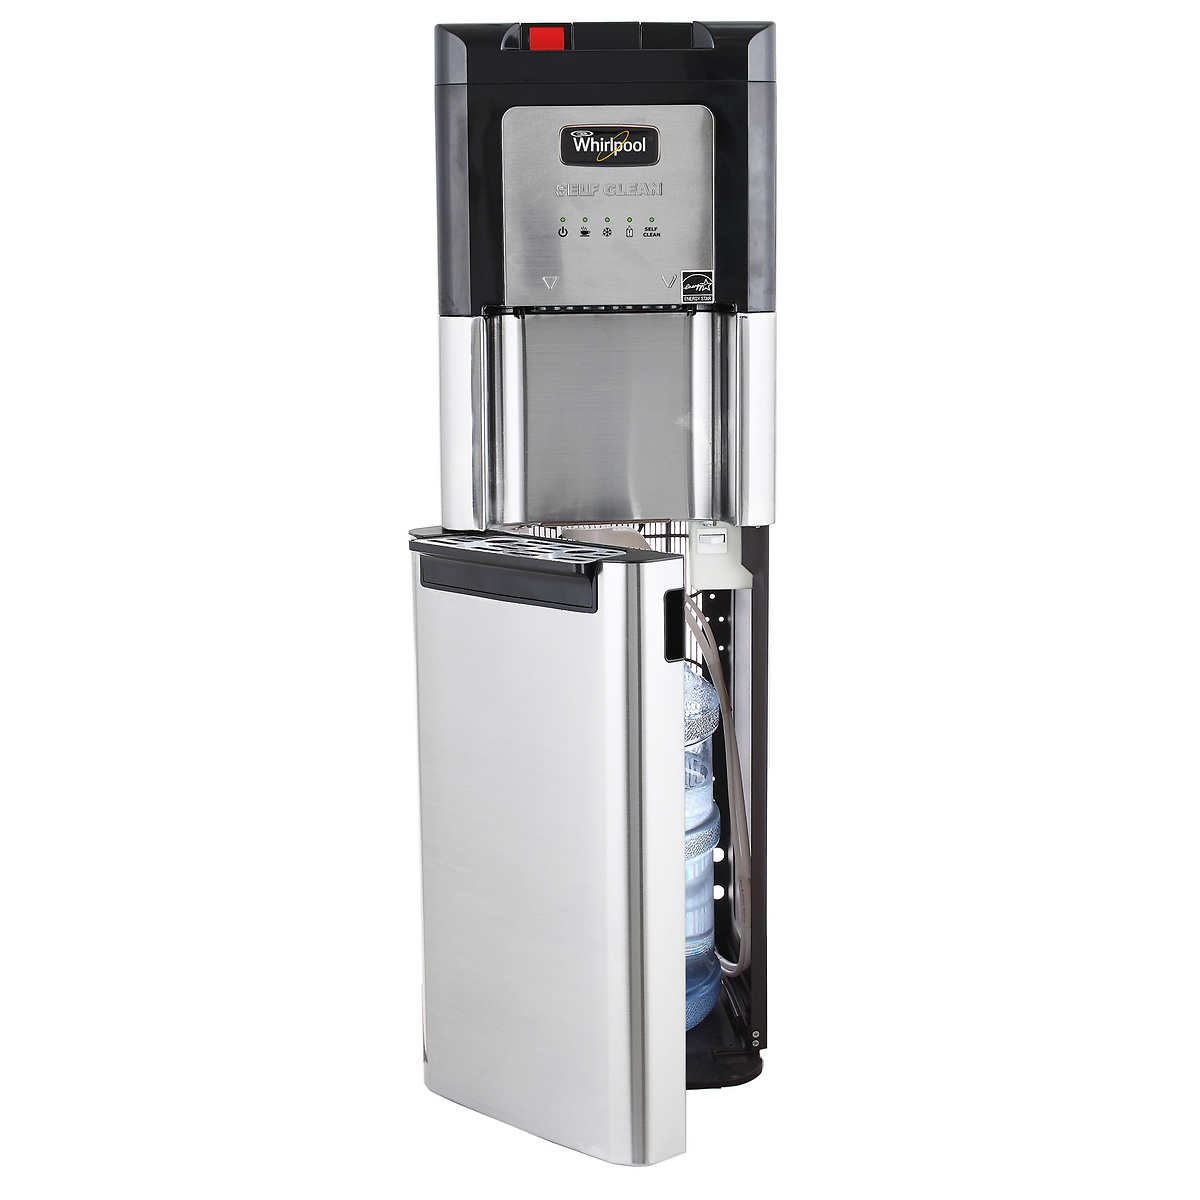 Whirlpool white ice costco canada - Whirlpool Self Cleaning Stainless Steel Bottom Load Water Cooler